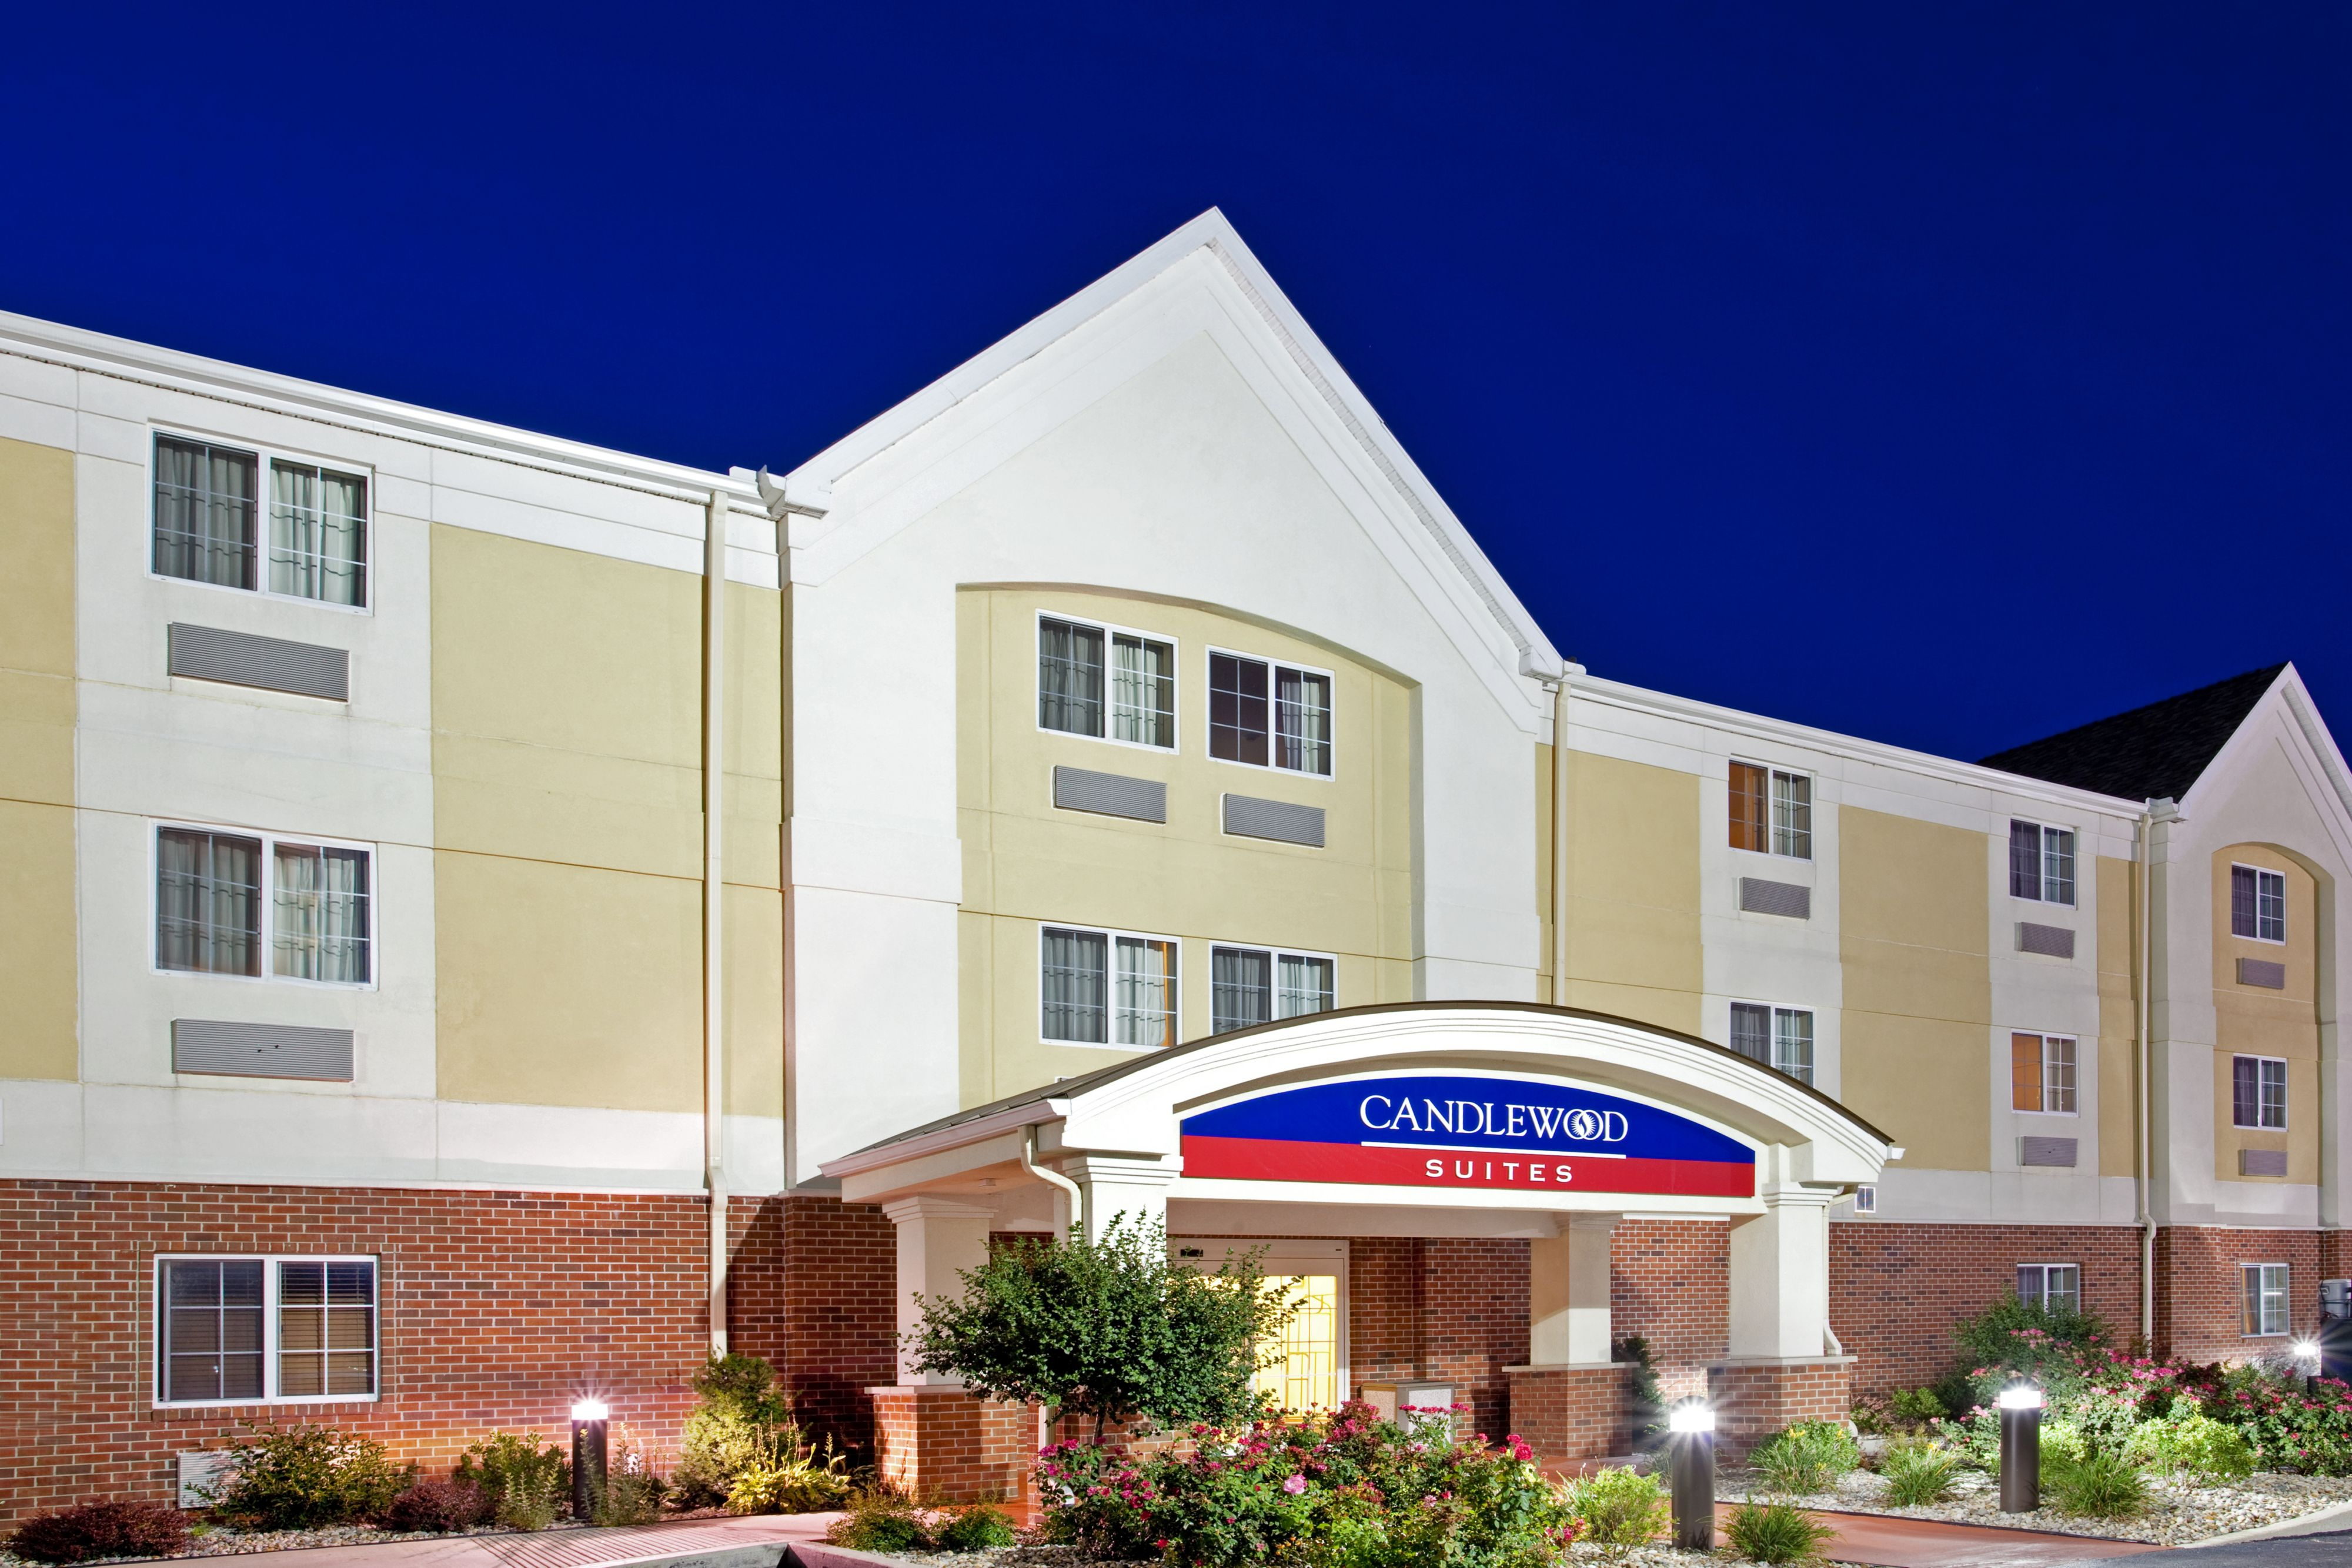 Candlewood Suites Oklahoma City Hotel - room photo 8866288